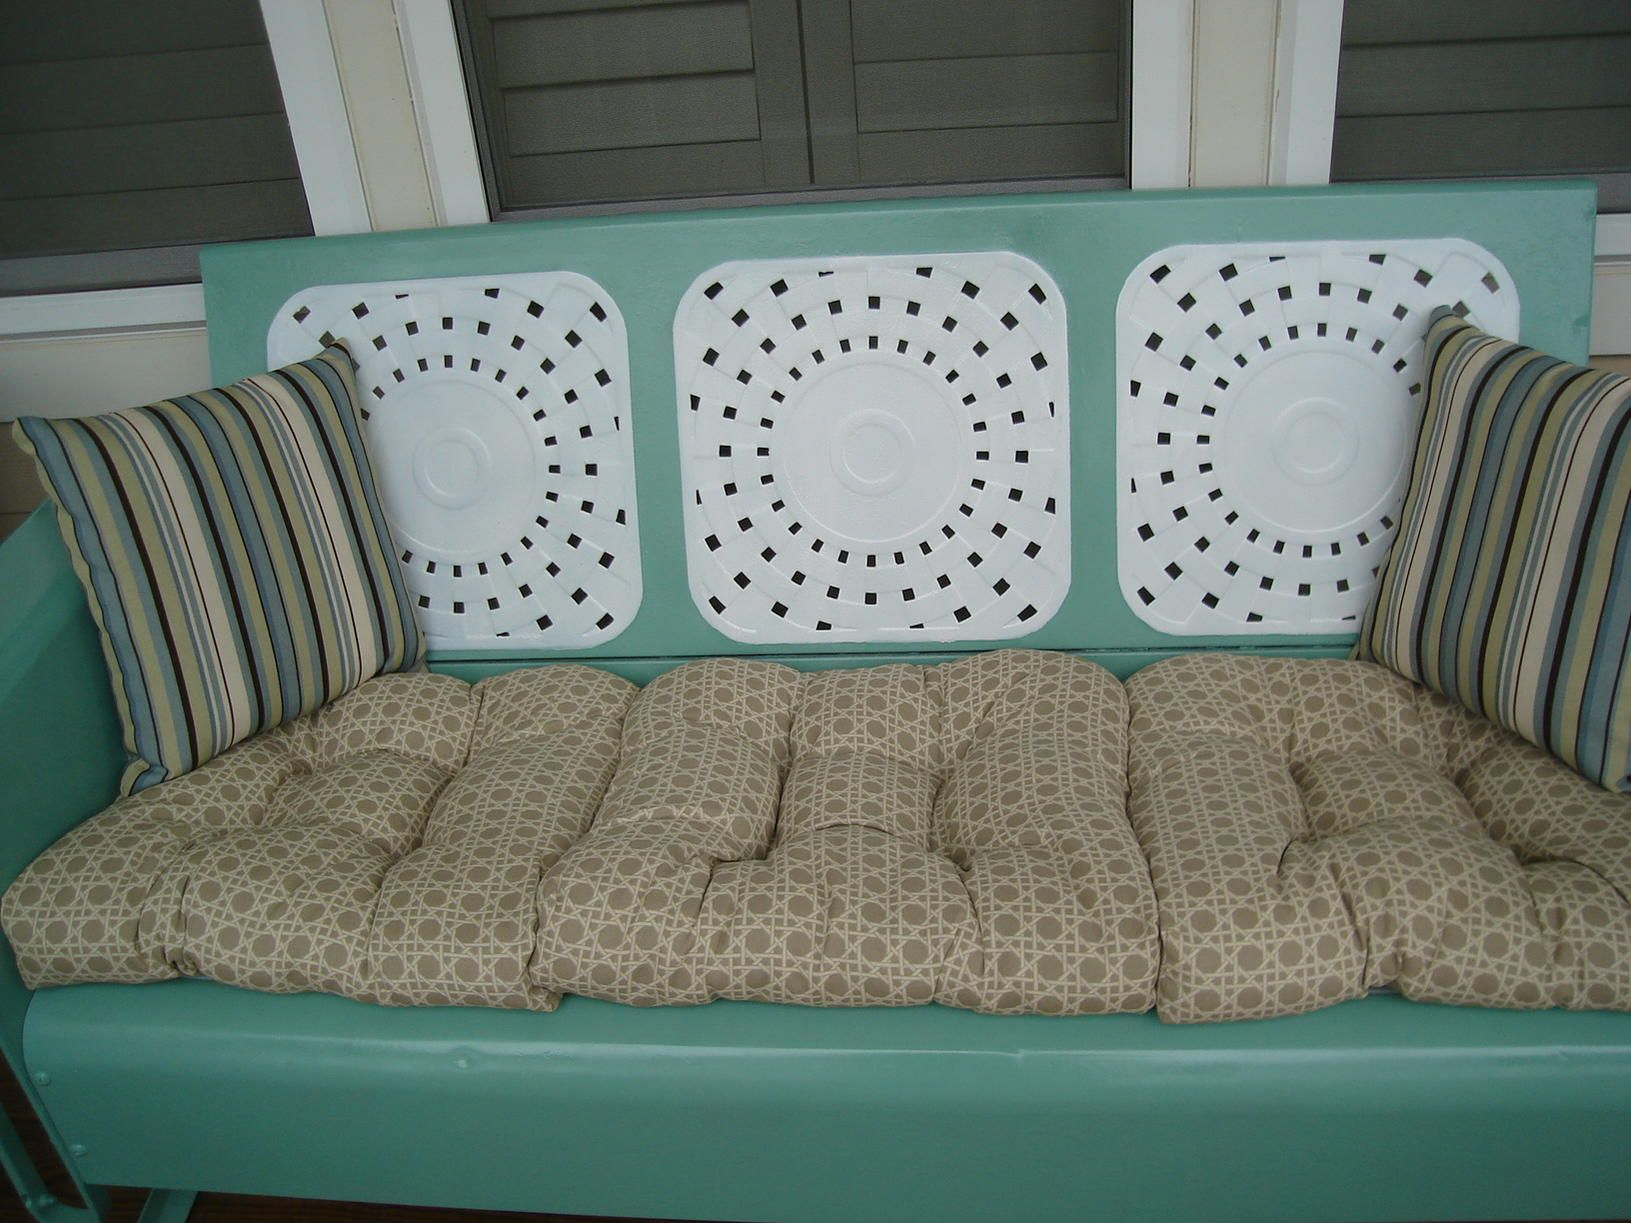 Vintage Metal Glider Gliders Here Outdoor Patio Furniture To See What